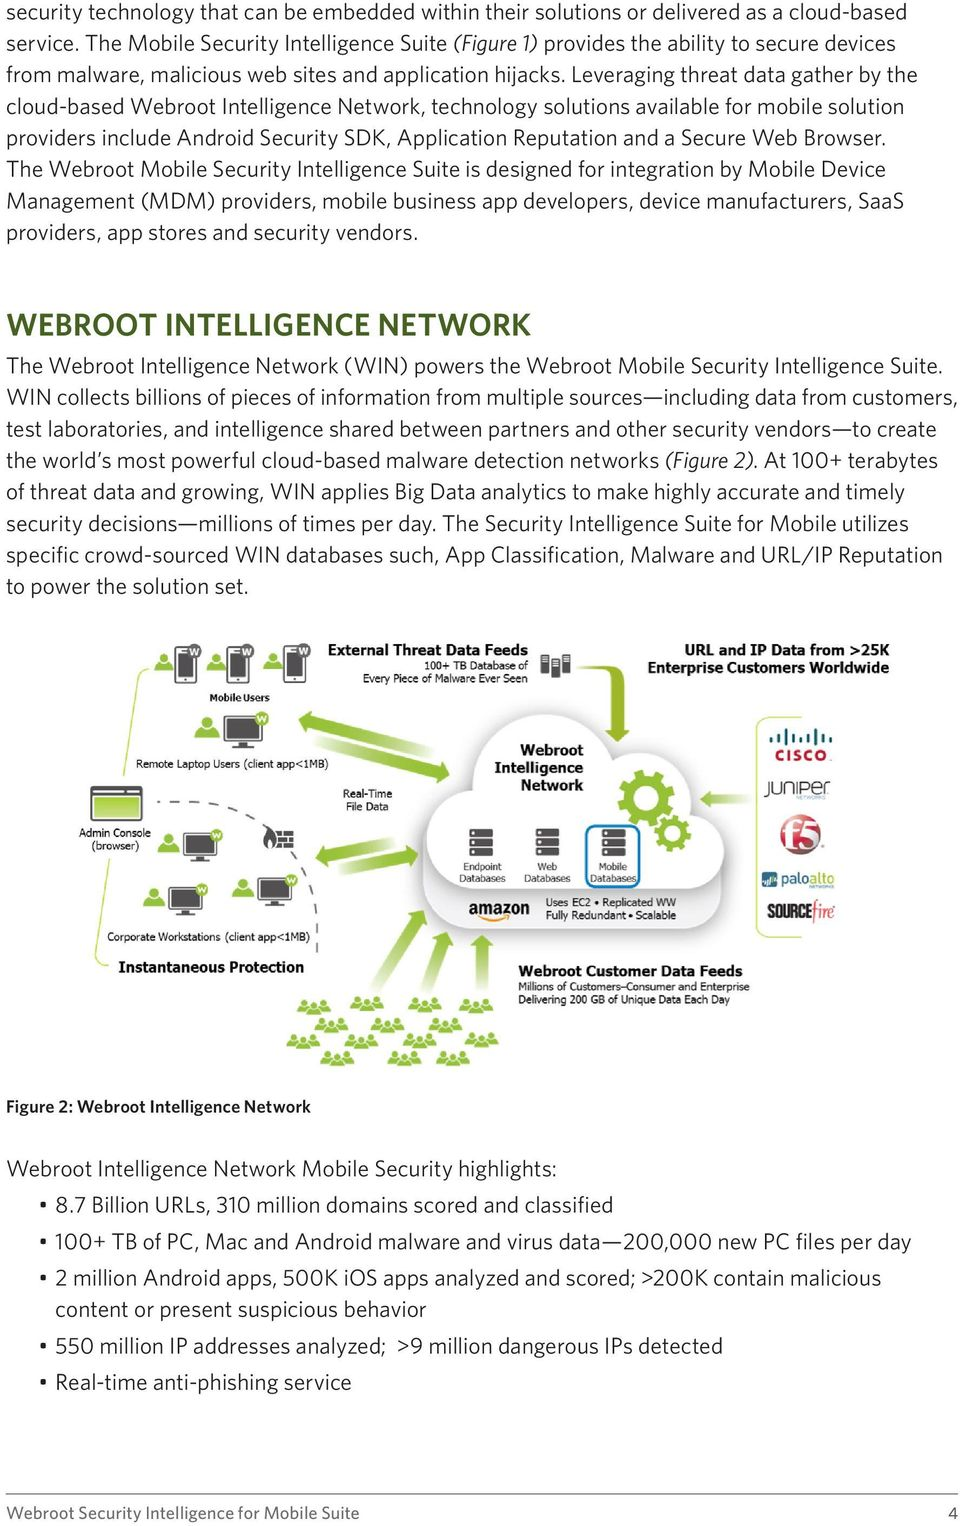 Leveraging threat data gather by the cloud-based Webroot Intelligence Network, technology solutions available for mobile solution providers include Android Security SDK, Application Reputation and a